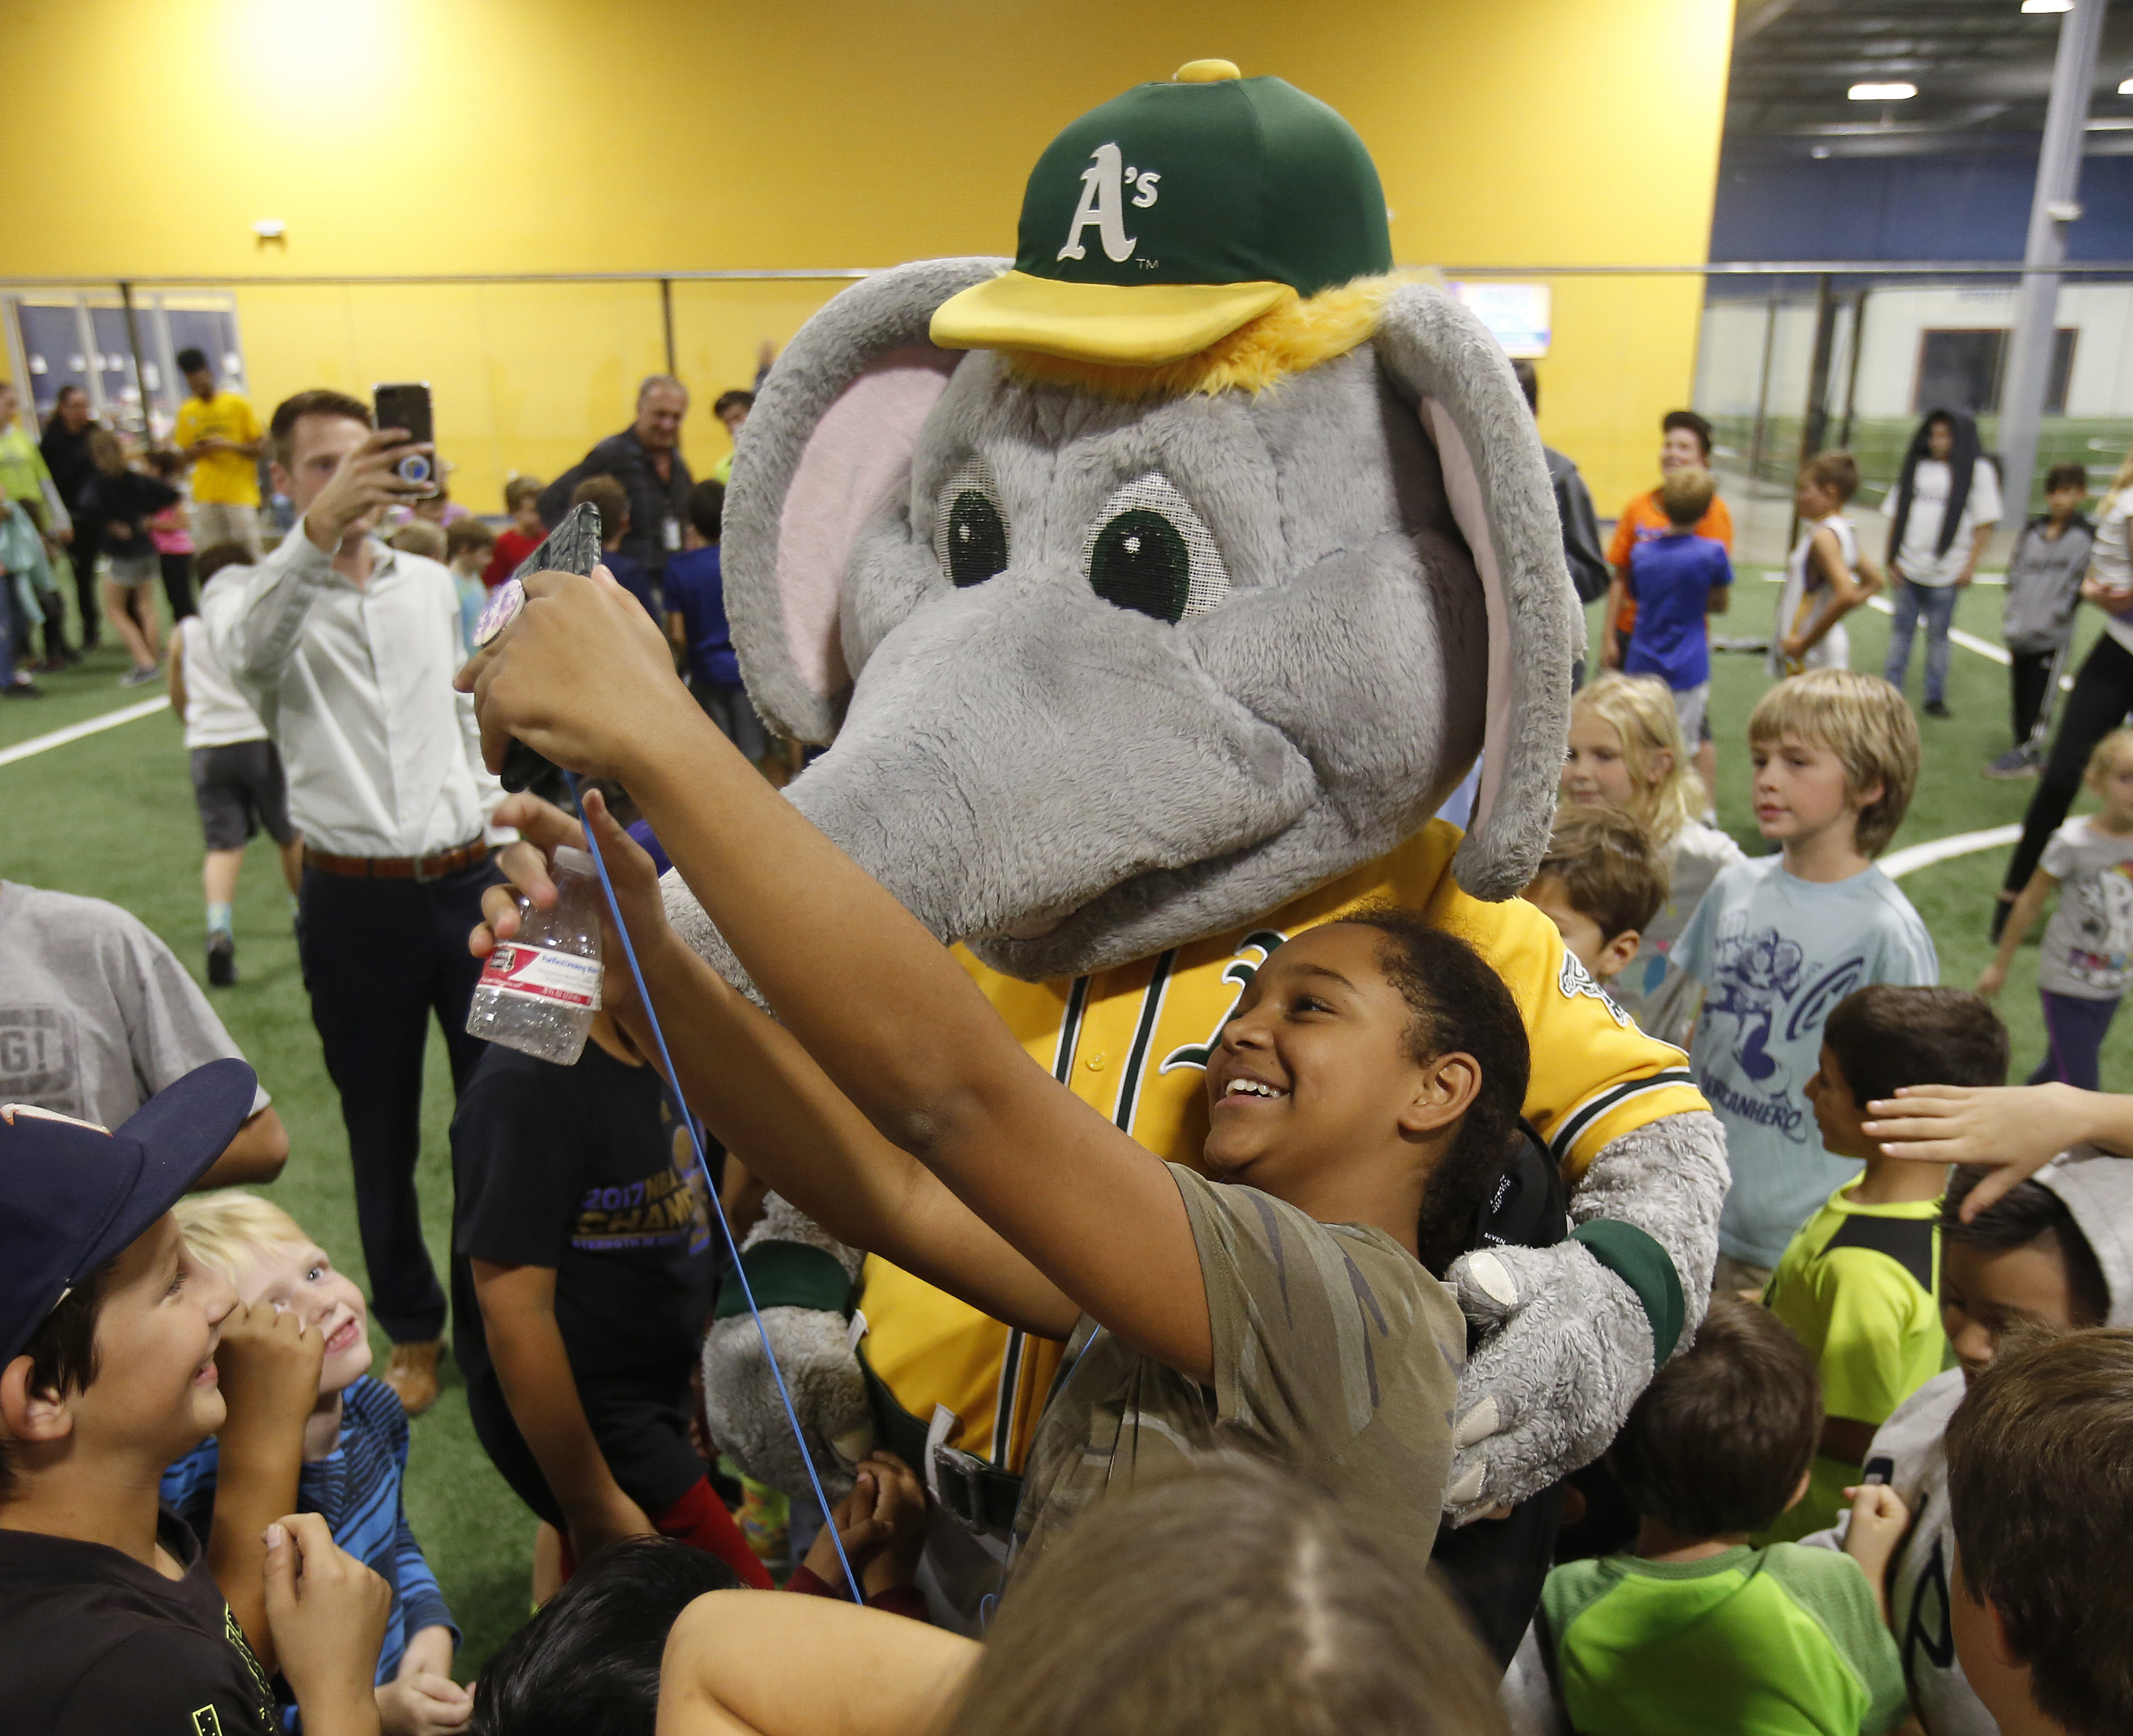 <div class='meta'><div class='origin-logo' data-origin='none'></div><span class='caption-text' data-credit='Rich Pedroncelli/AP Photo'>Deja Jones, 12, takes a selfie with Stomper, the mascot of the Oakland A's Major League Baseball team at an event for children affected by the wildfires, Oct. 17, in Santa Rosa.</span></div>